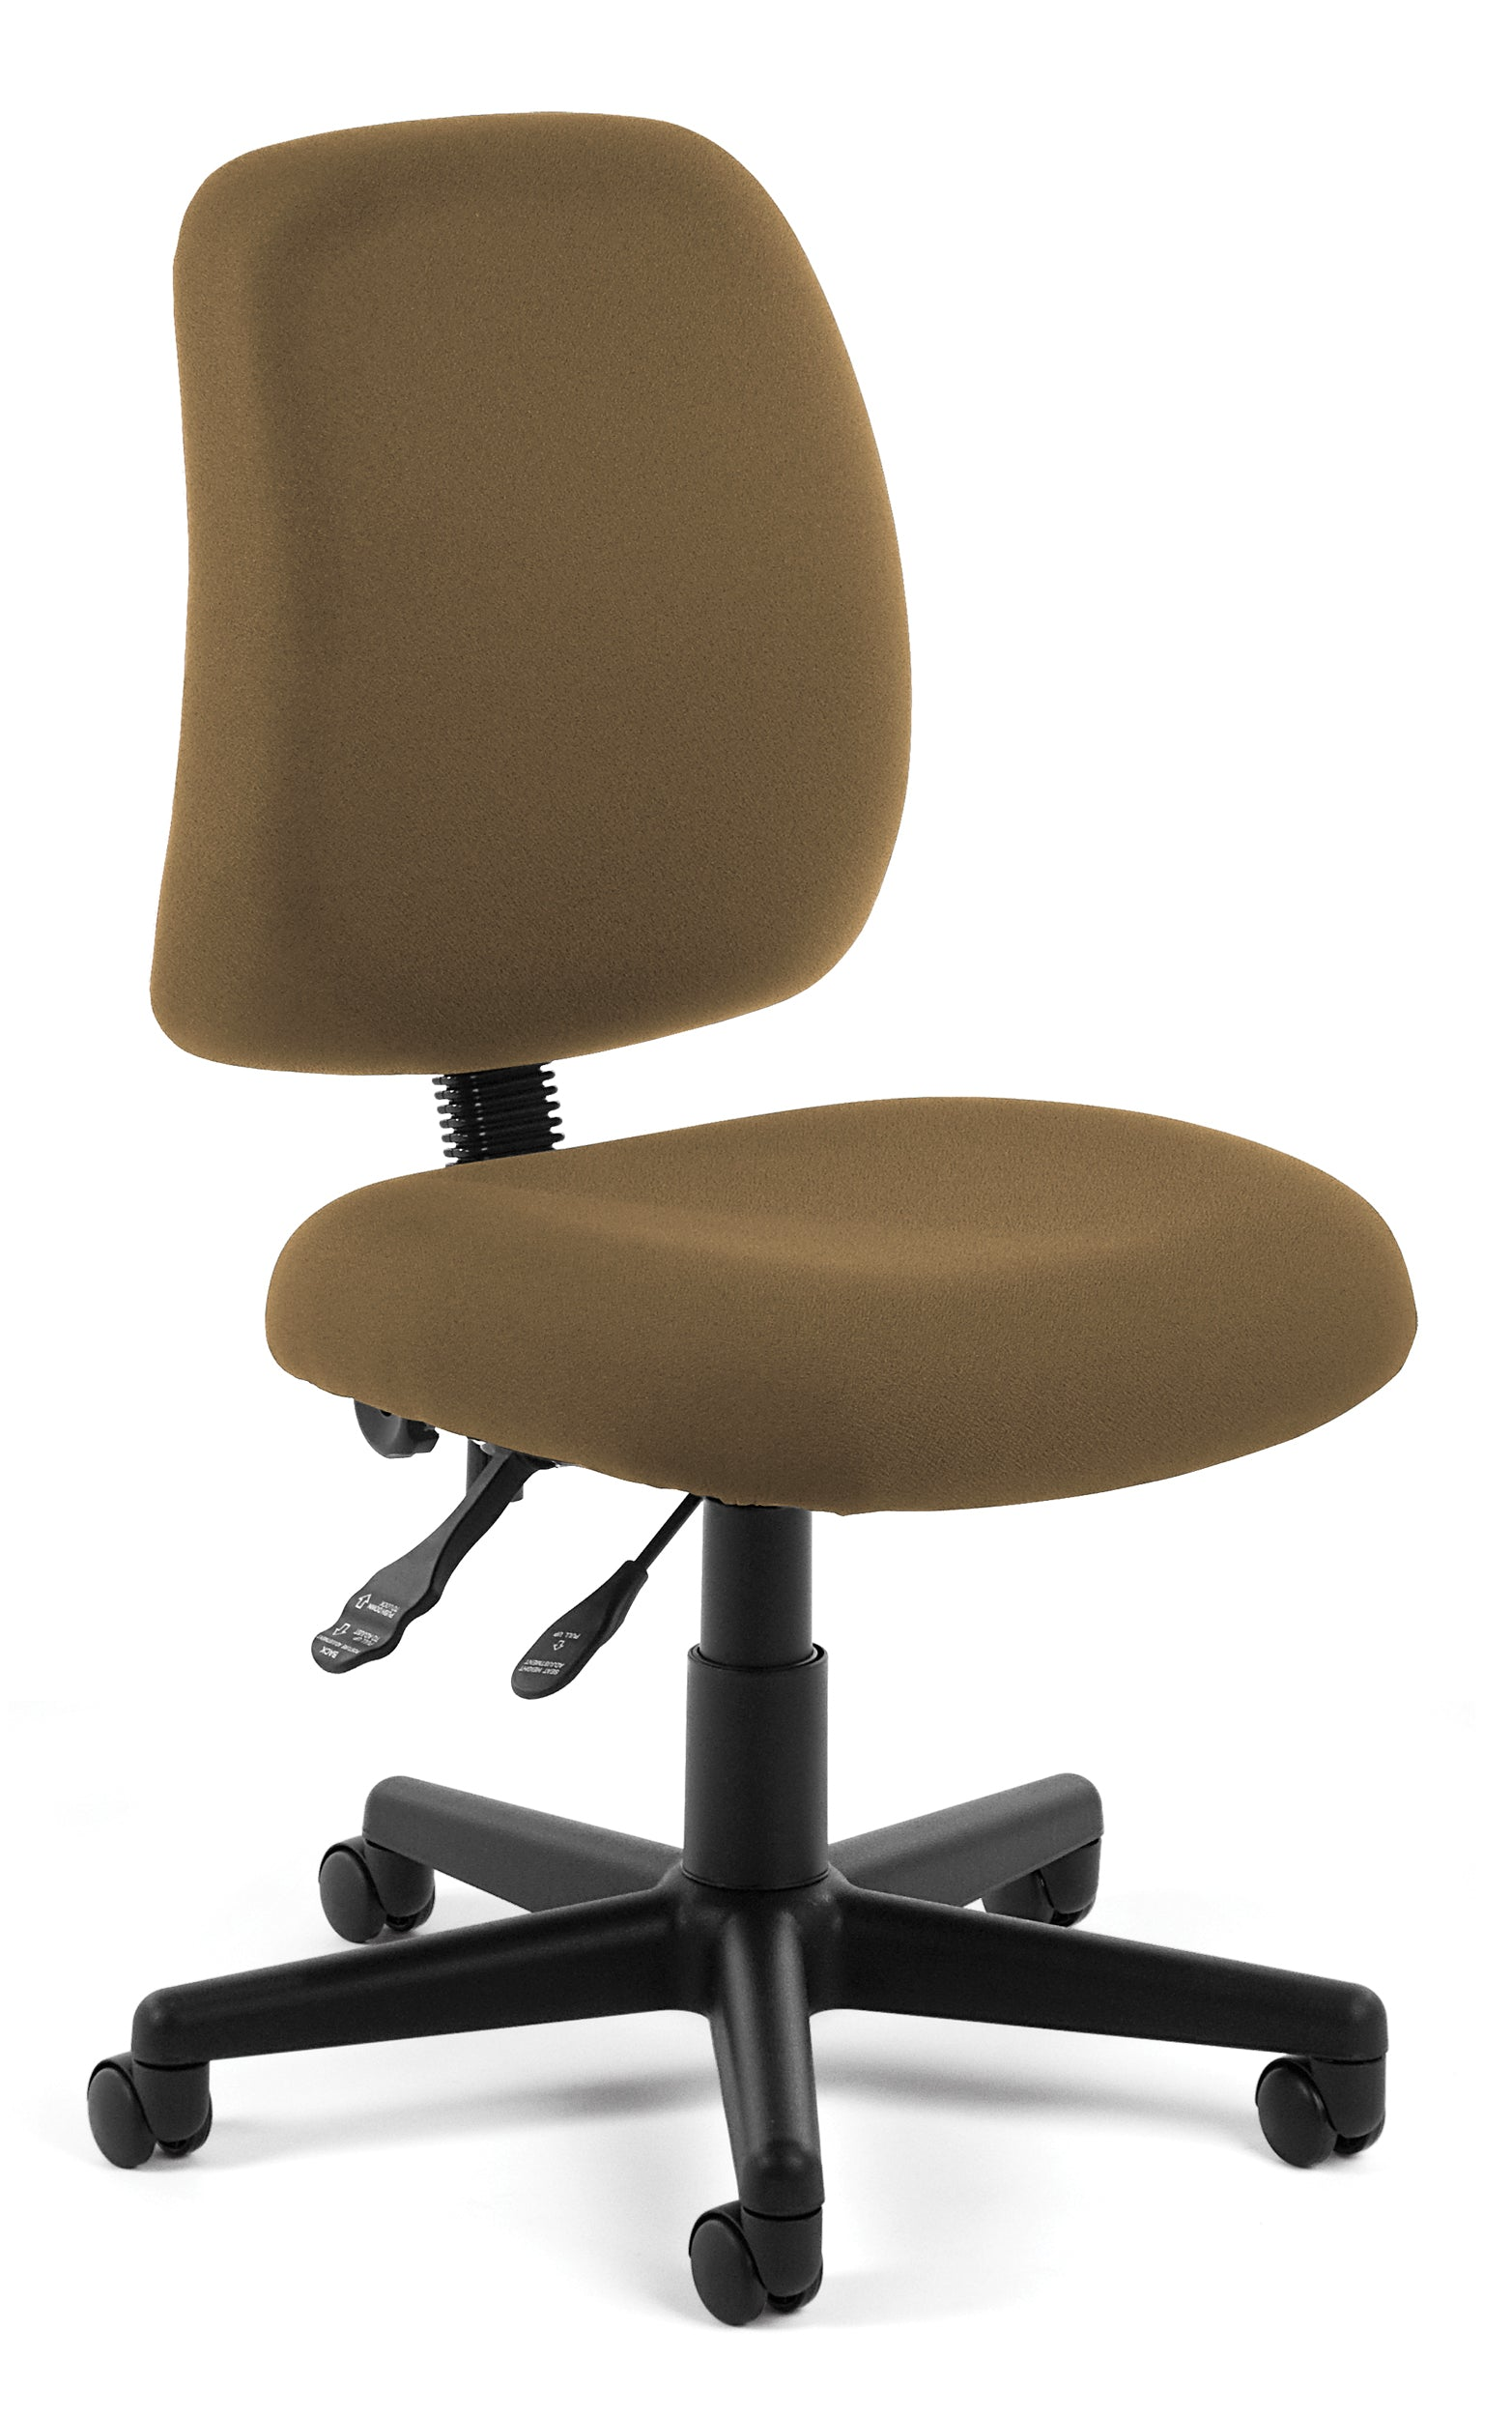 Ofminc Model 118-2 Posture Series Armless Fabric Swivel Task Chair